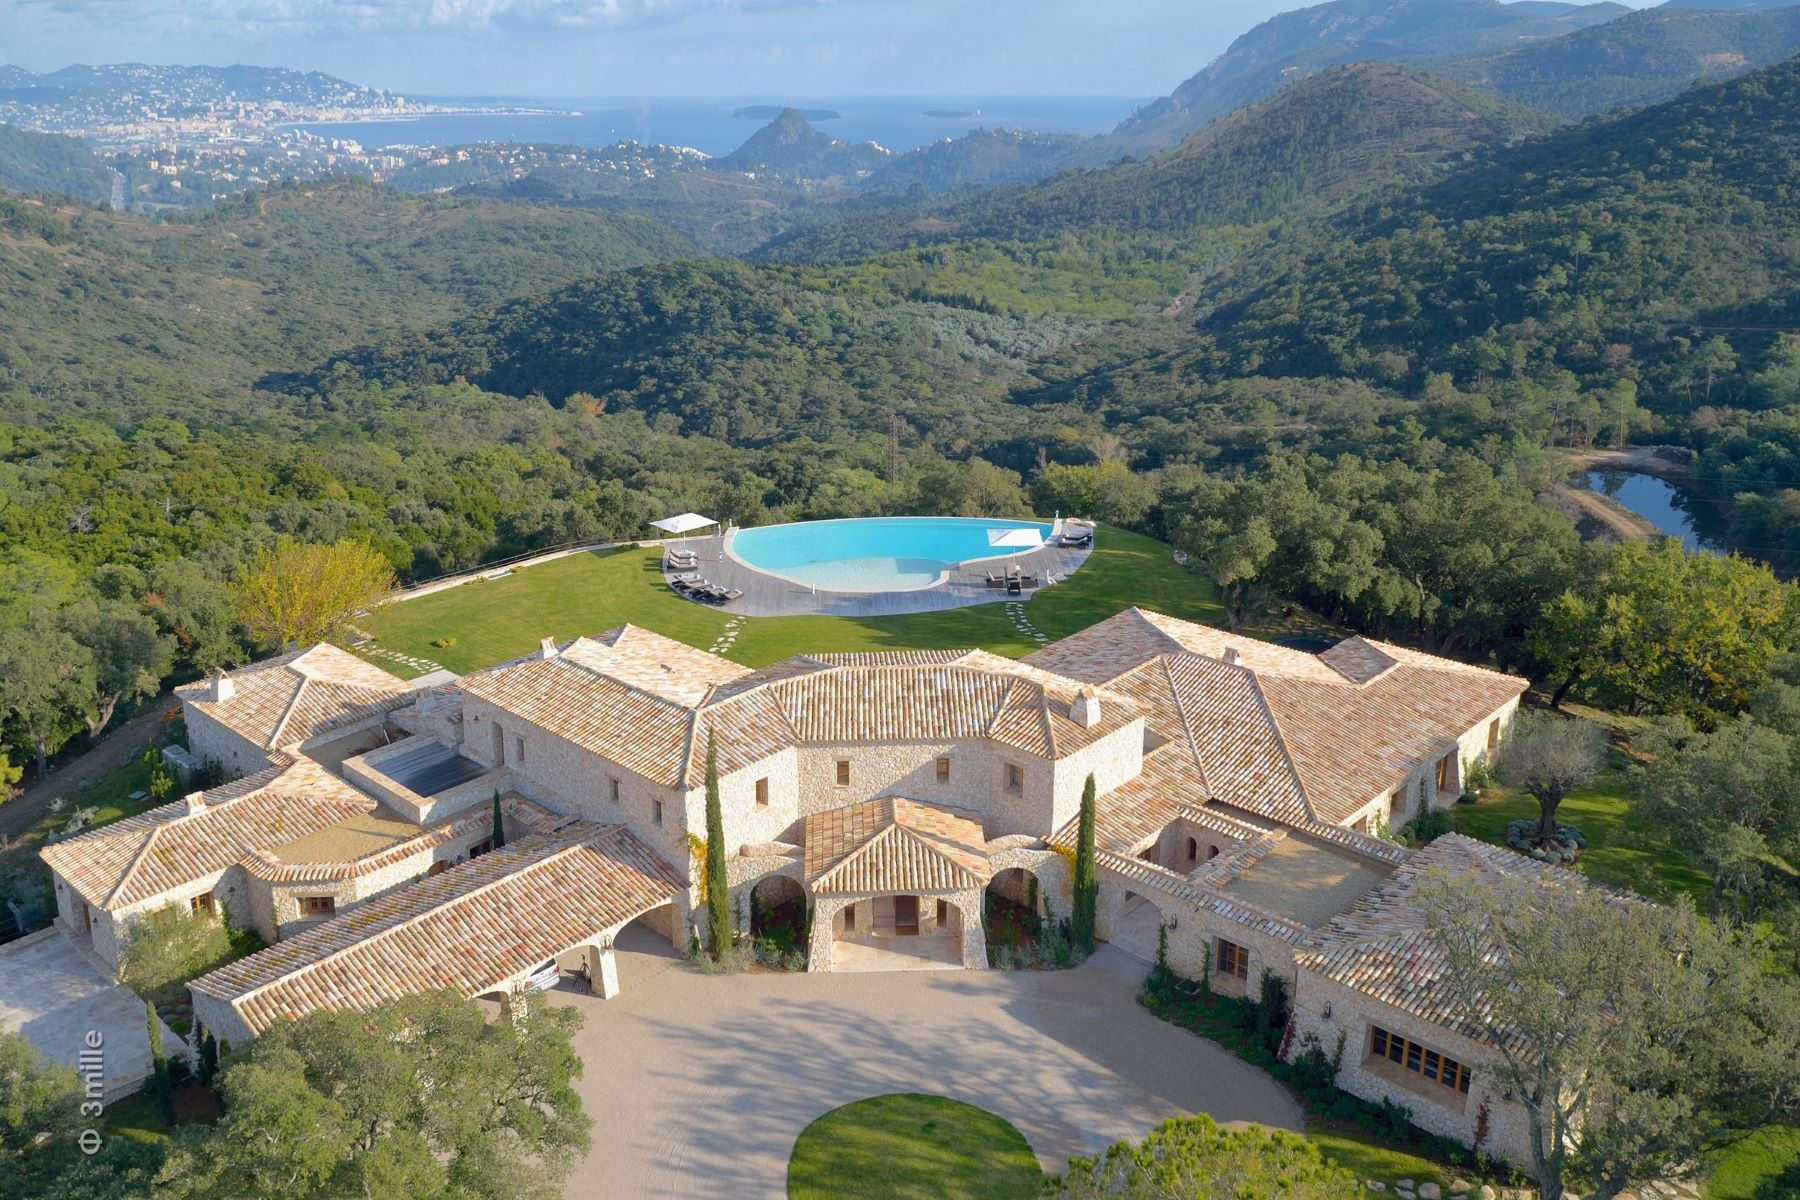 Eensgezinswoning voor Verkoop op Magnificent provencal domain with views over the bay of Cannes - luxury estate Les Adrets De L Esterel, Provence-Alpes-Cote D'Azur 83600 Frankrijk